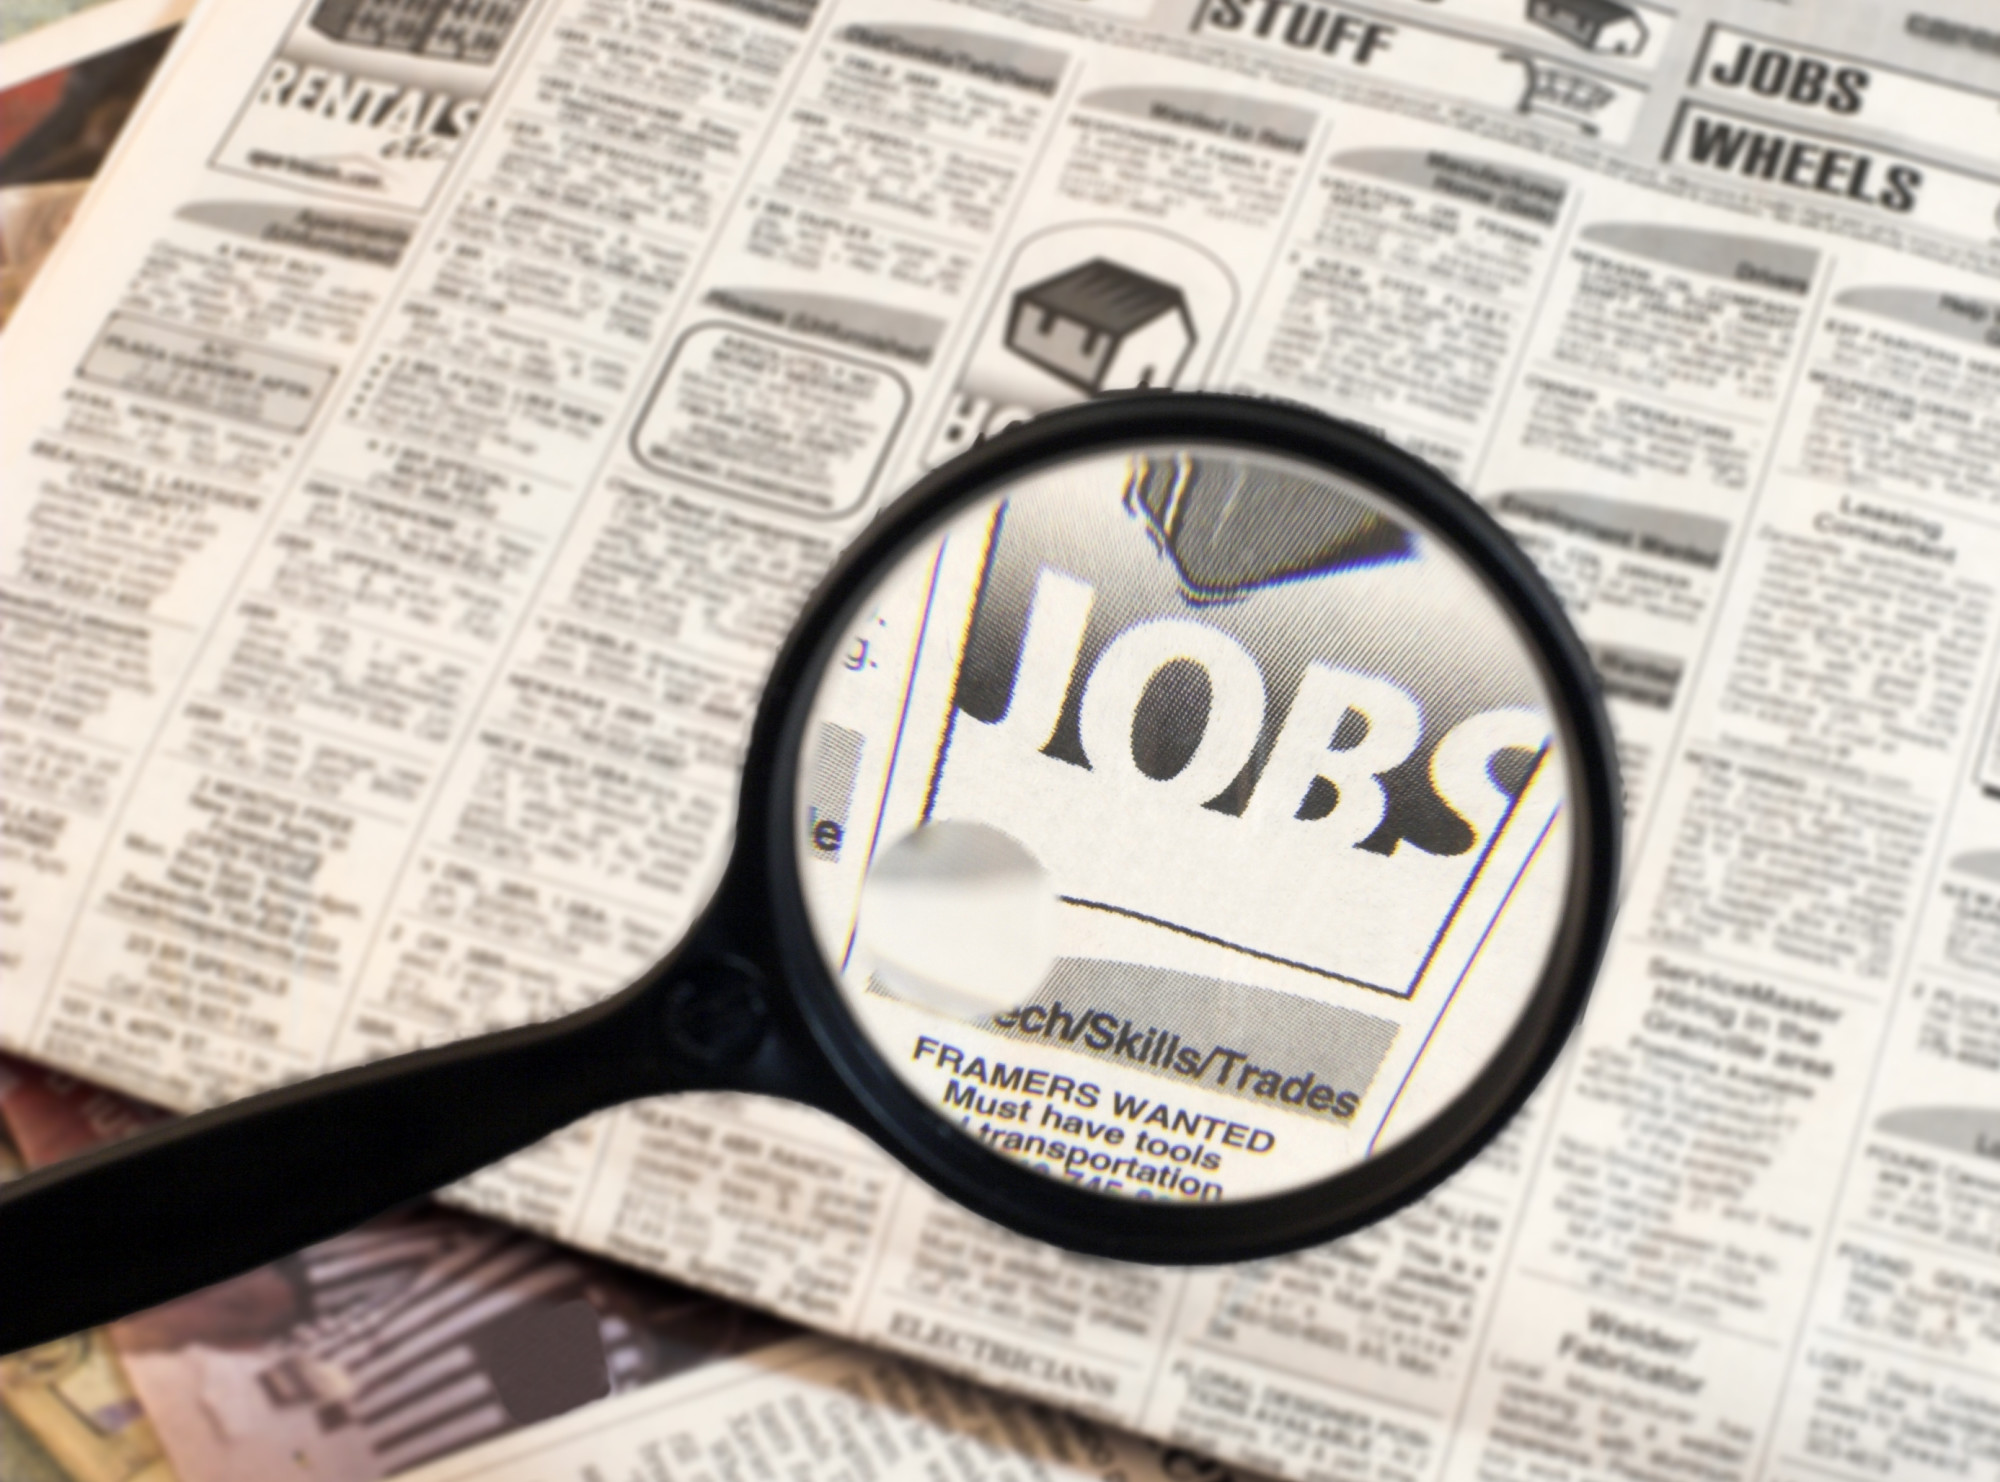 magnifying glass focusing word Jobs in newspaper